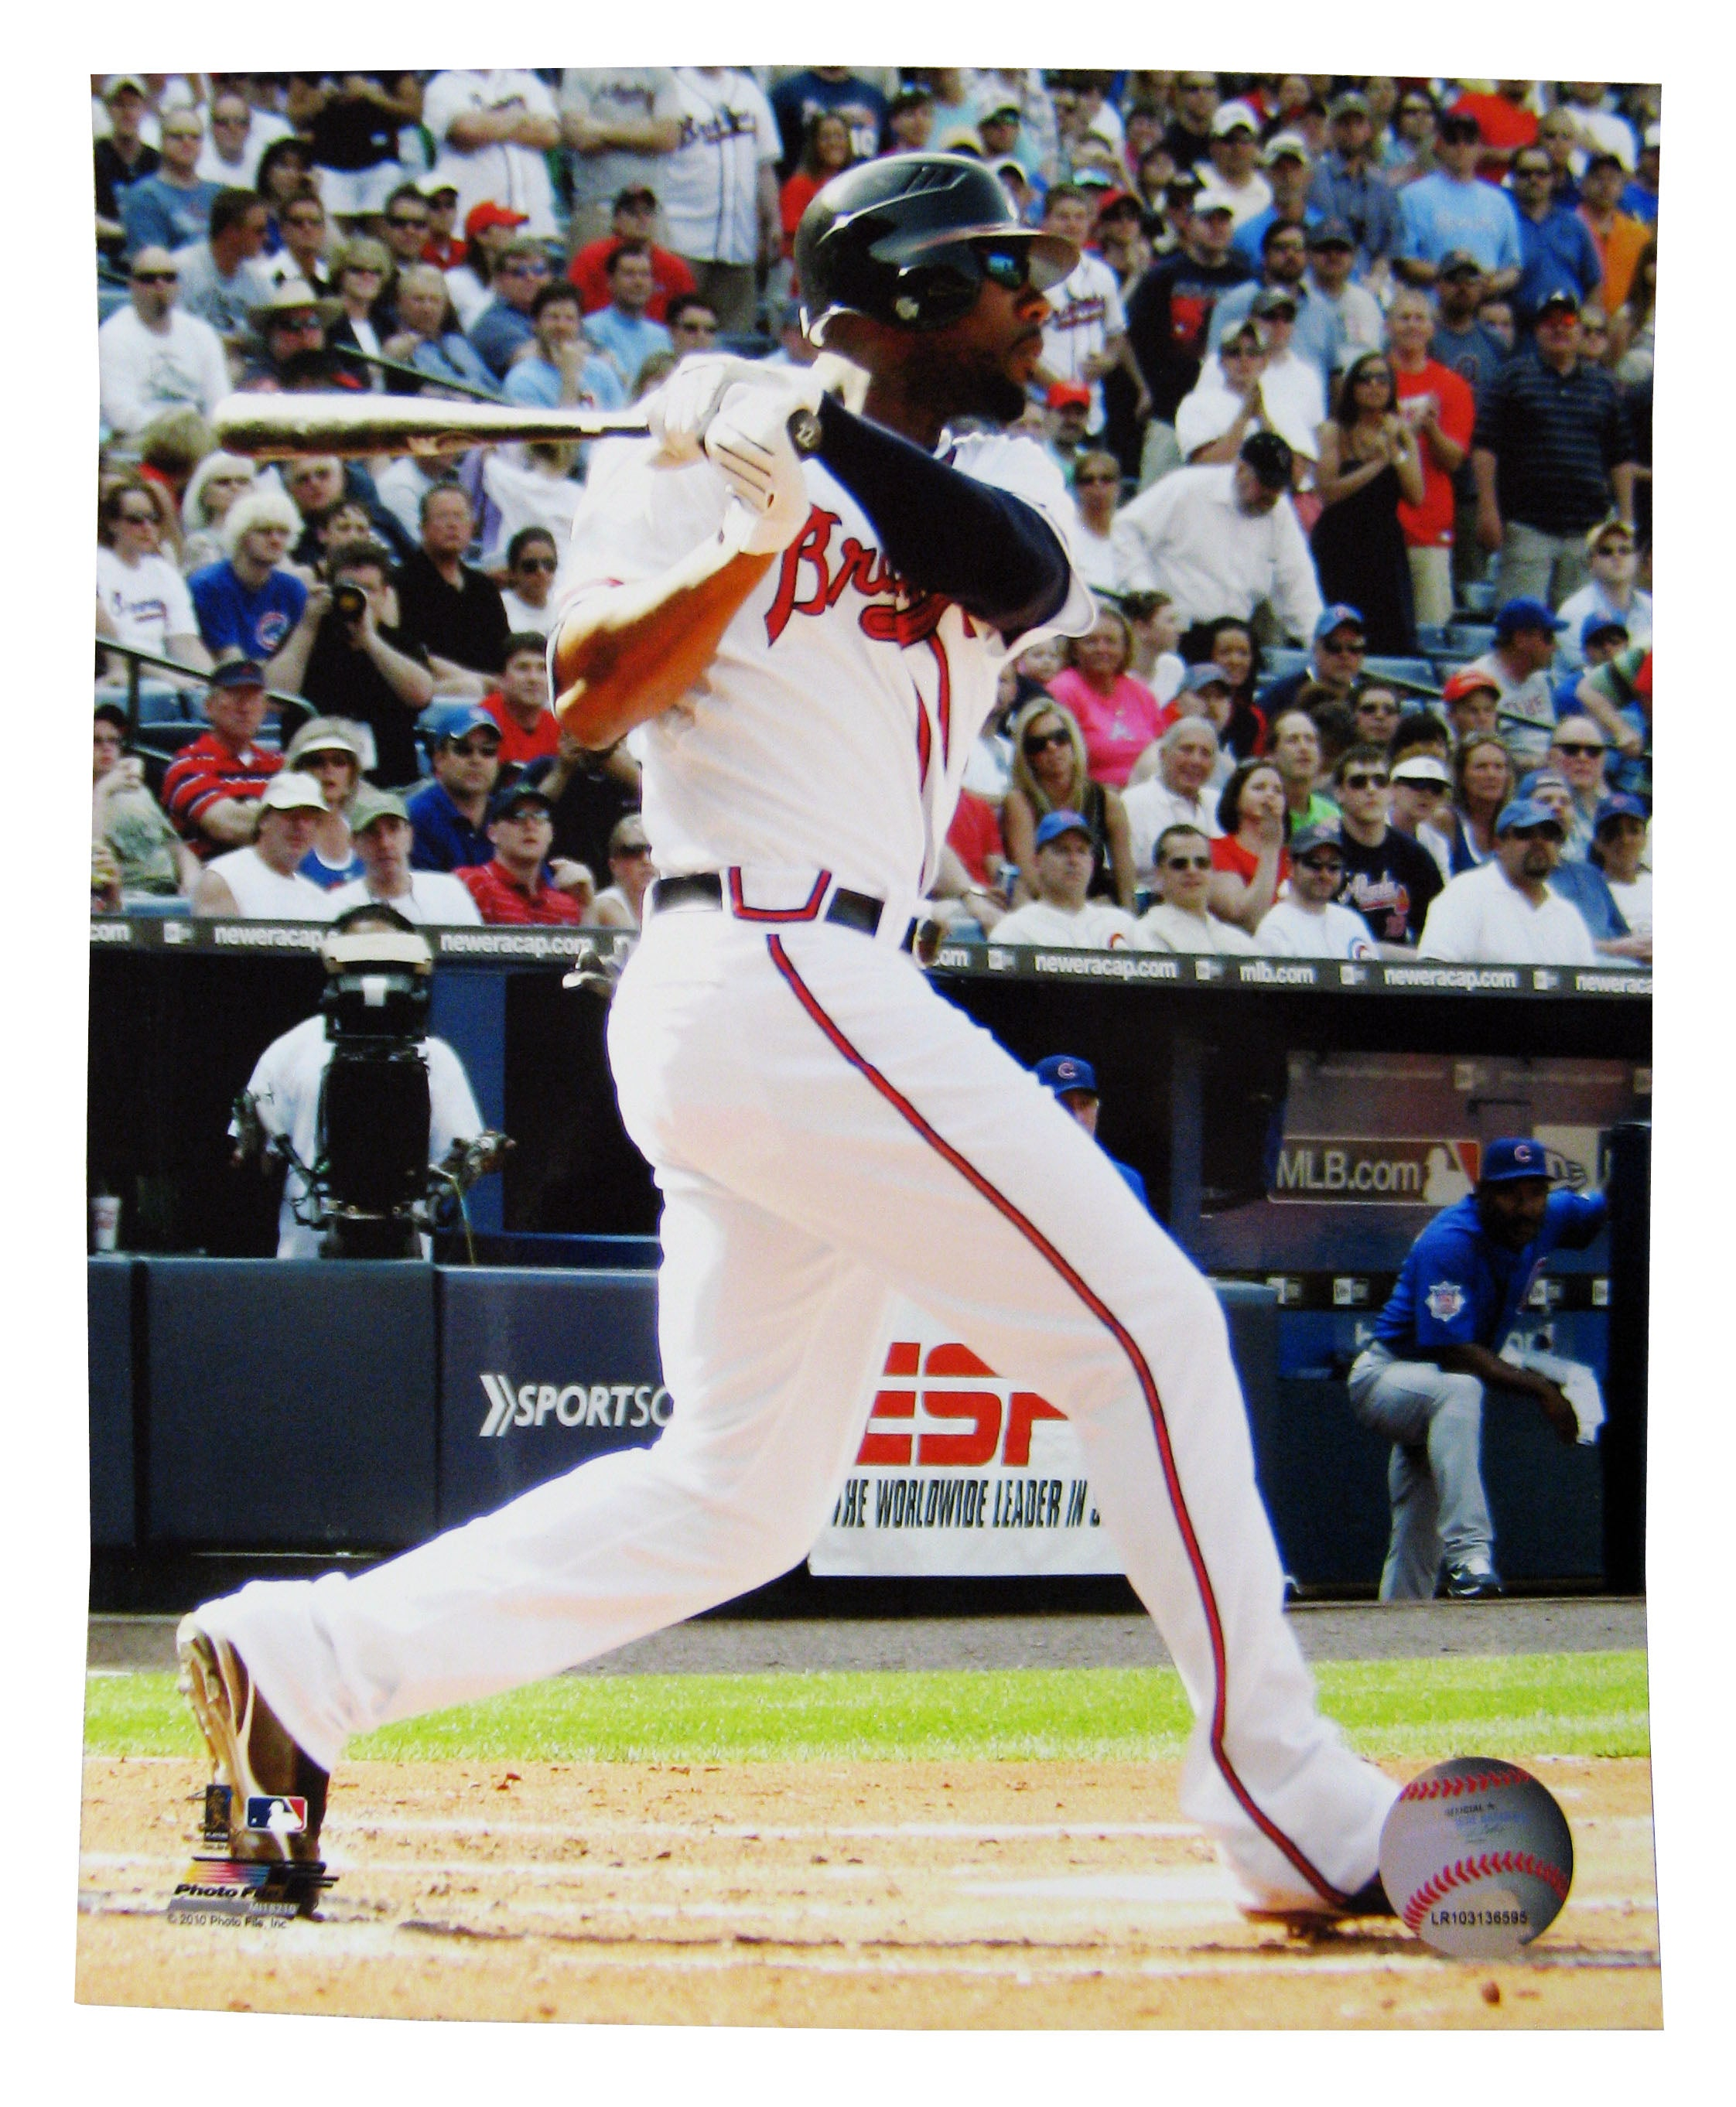 Unsigned Jayson Heyward 8x10 Unframed Photo - Sports Butler